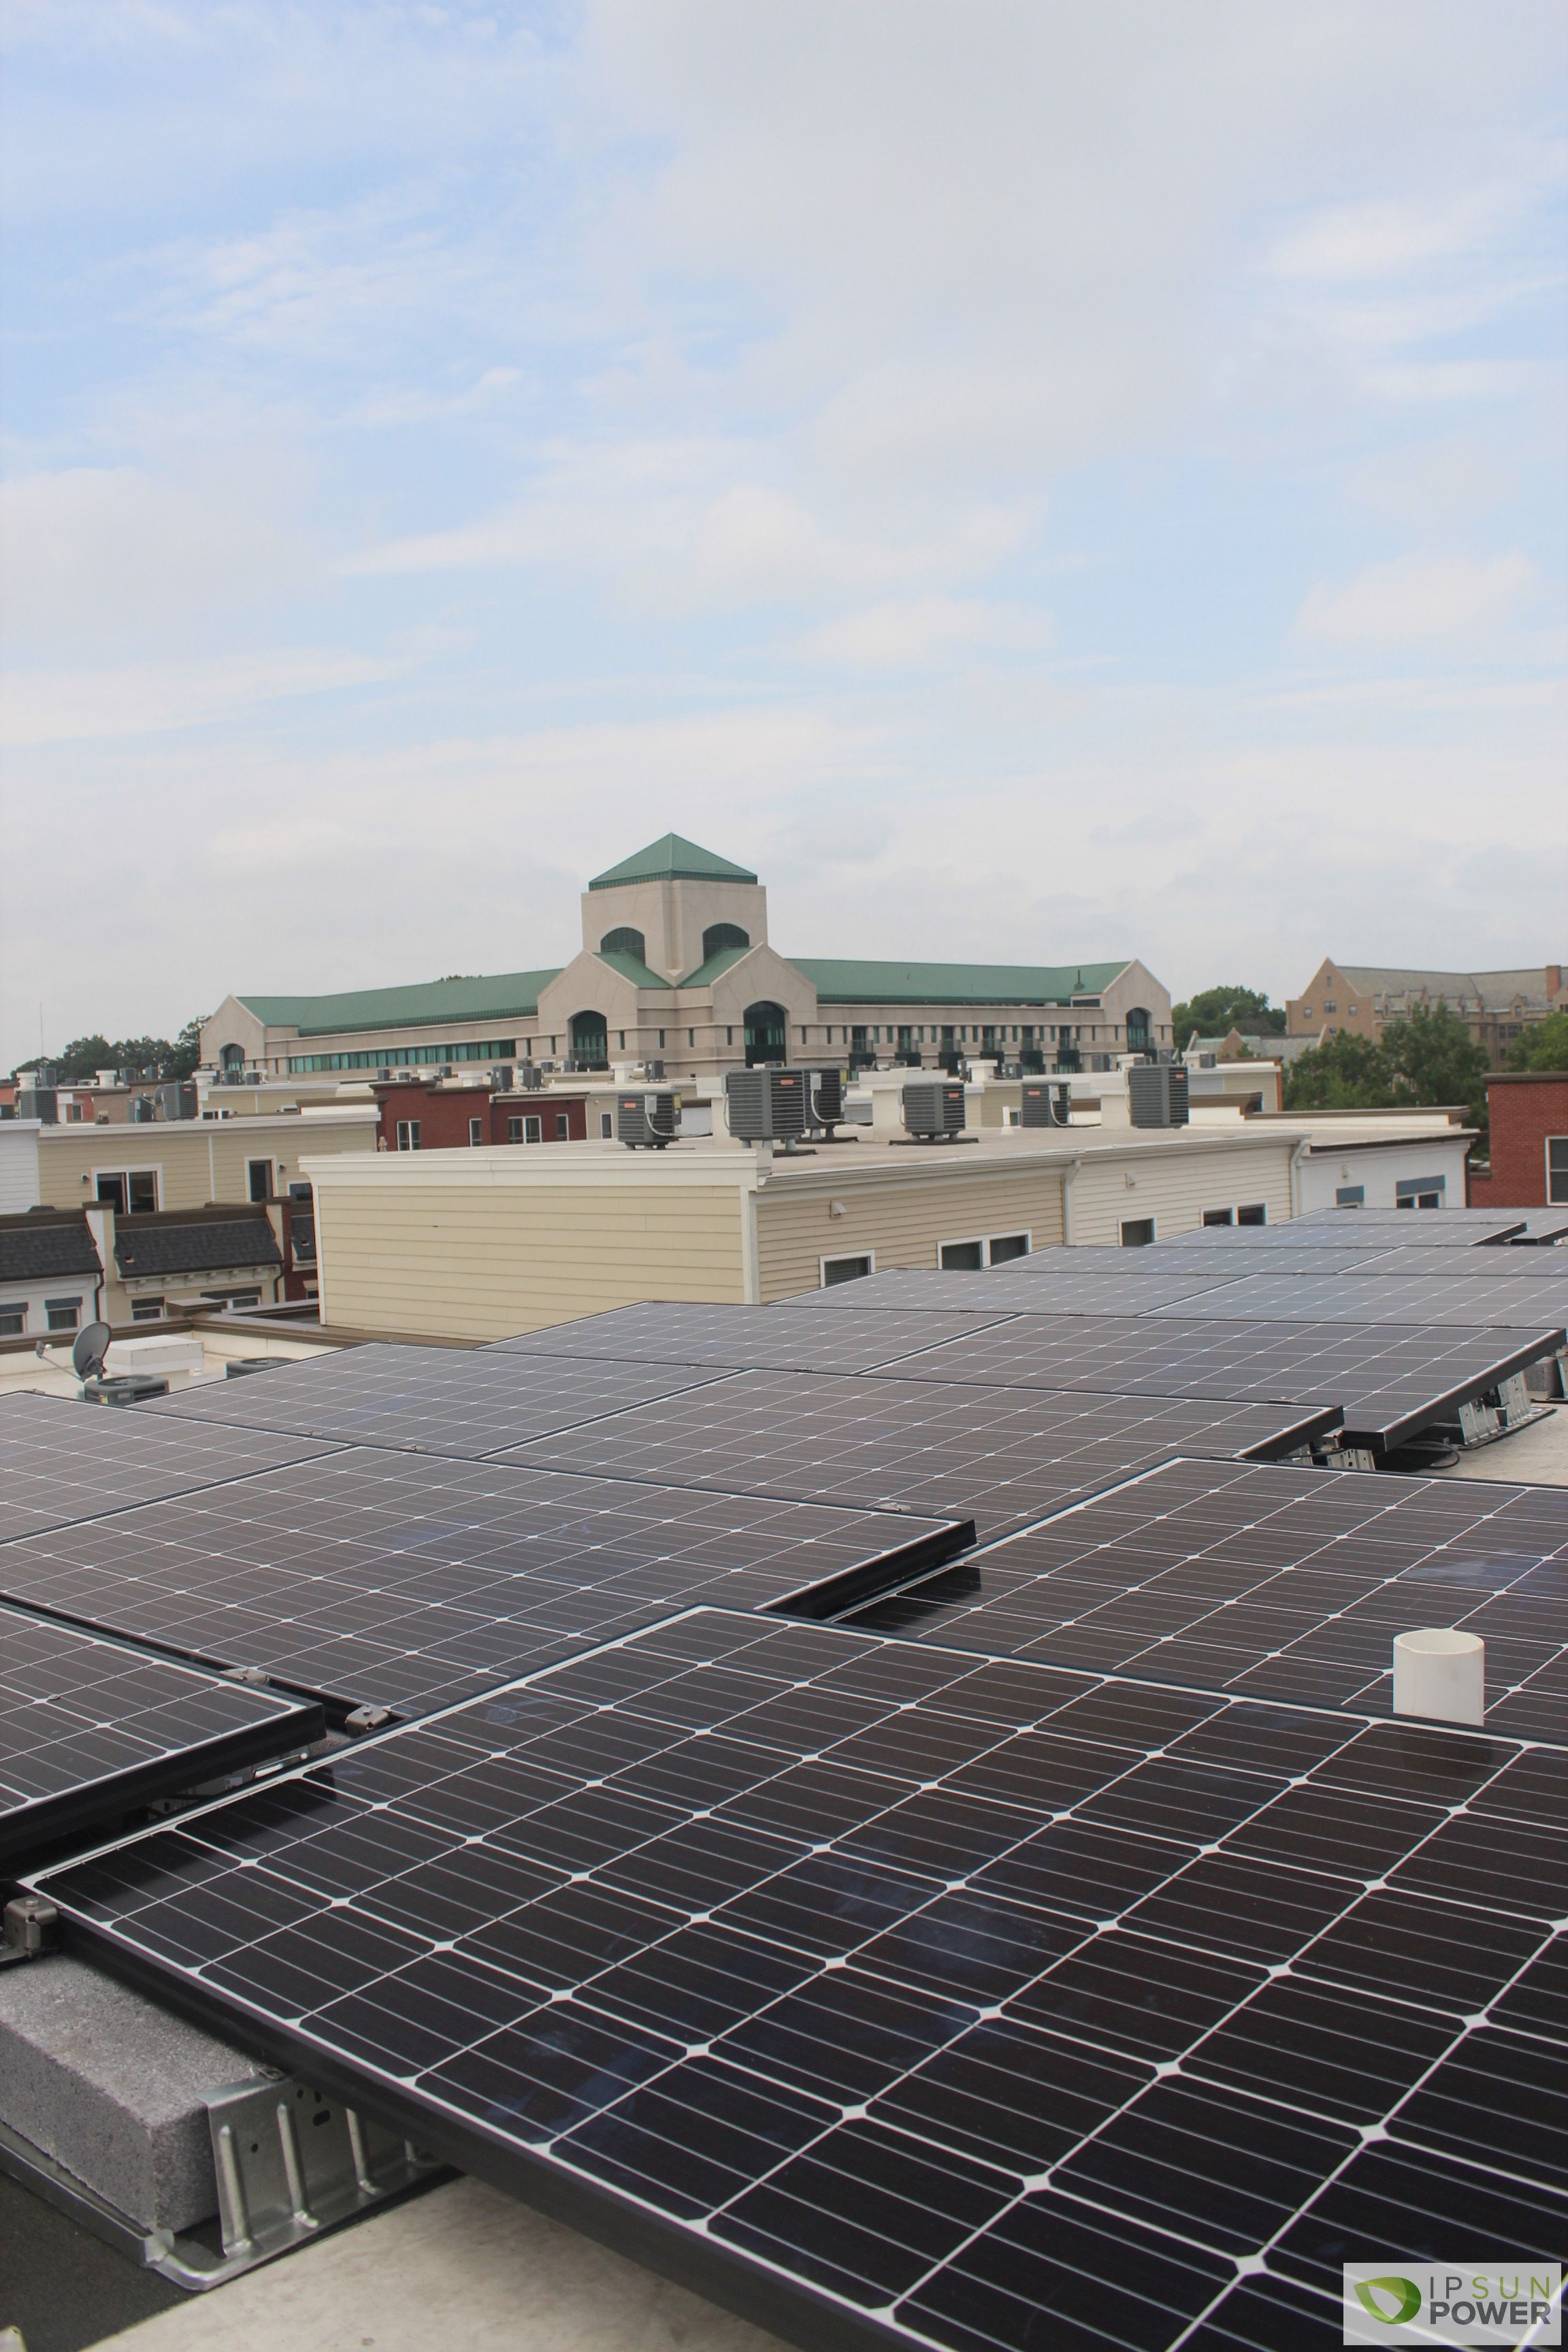 Ballasted solar panels in Washington DC